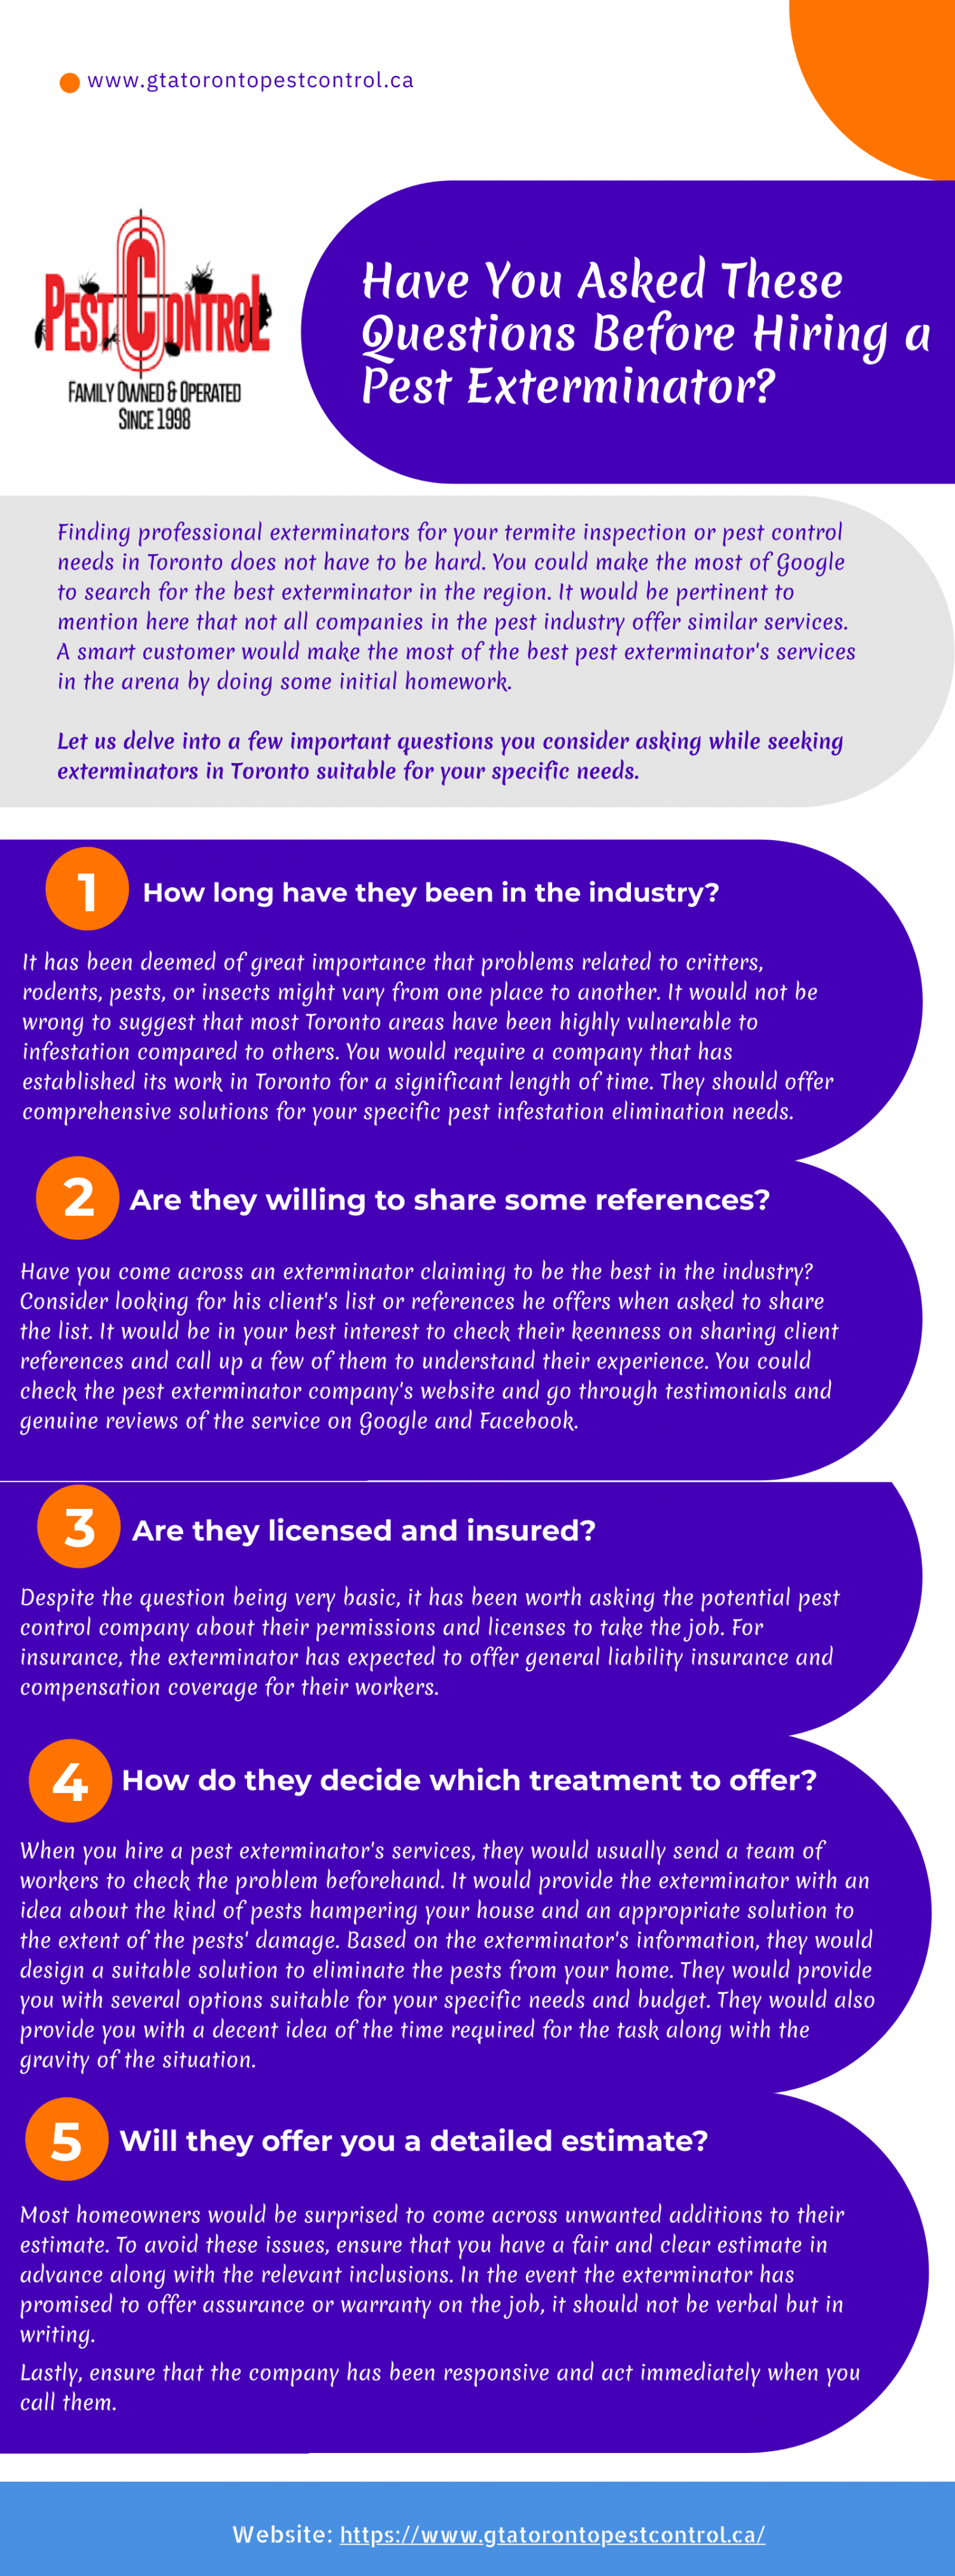 Have You Asked These Questions Before Hiring a Pest Exterminator? Infographic